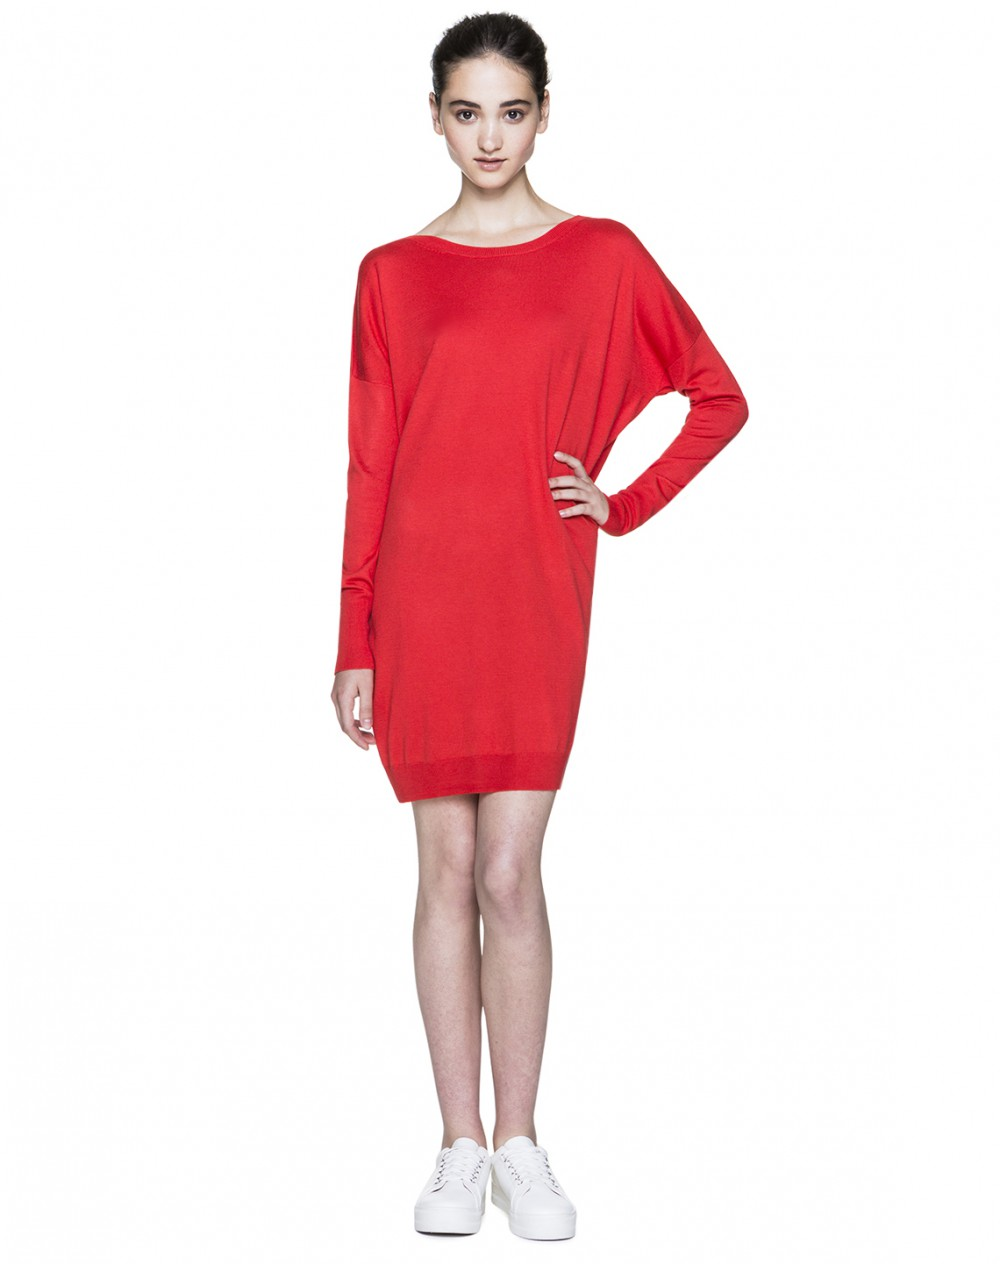 United colors of benetton for Shop online benetton